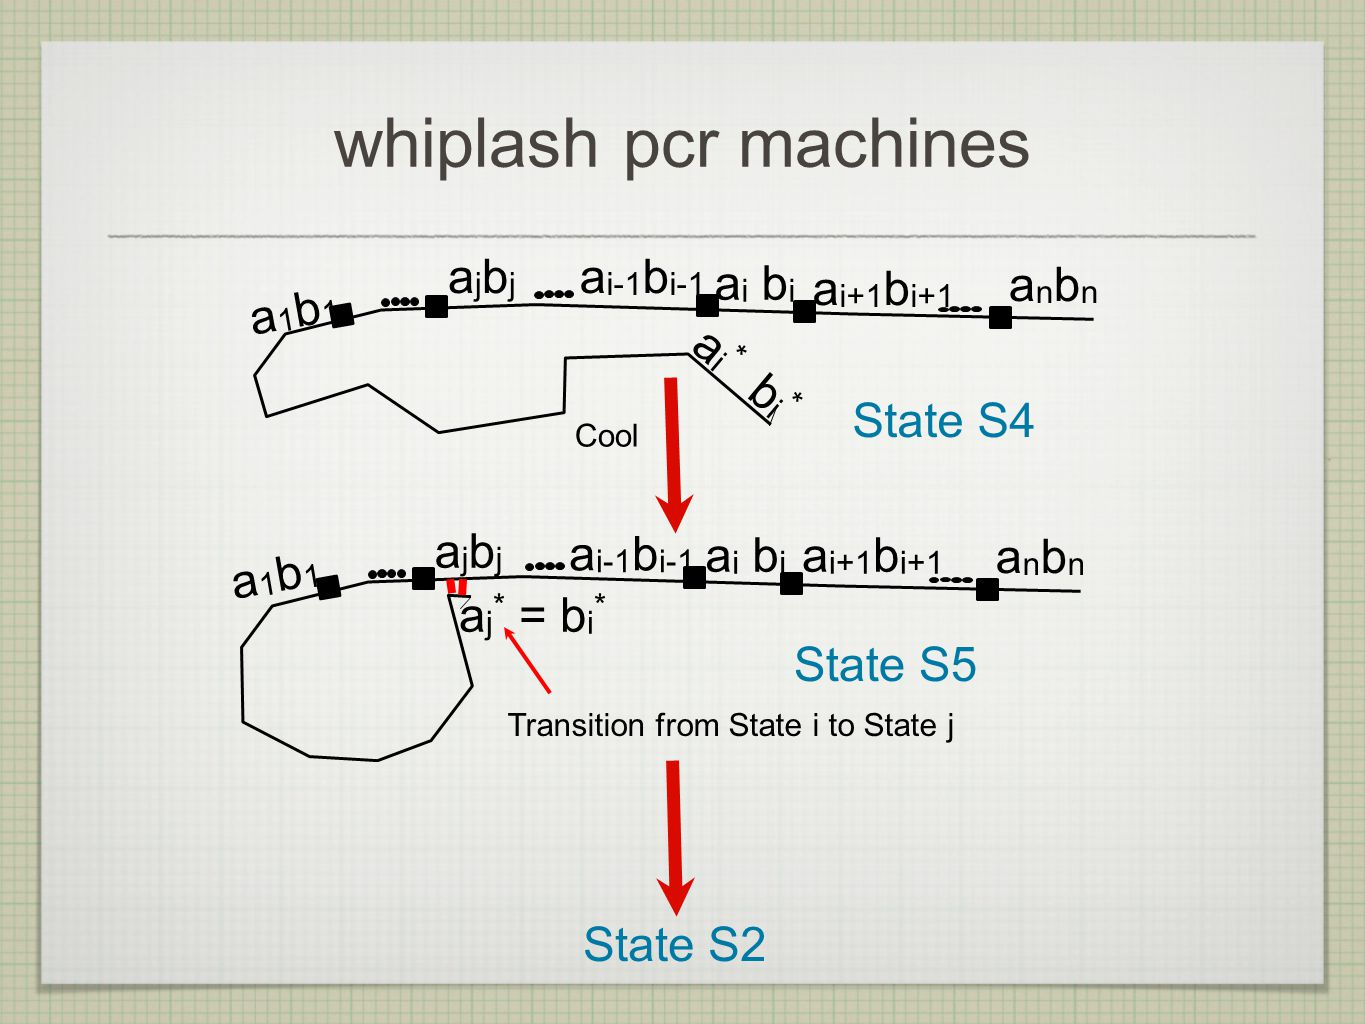 whiplash pcr machines a i * b i * State S4 a i b i a i+1 b i+1 a i-1 b i-1 anbnanbn a1b1a1b1 ajbjajbj Cool a j * = b i * State S5 a i b i a i+1 b i+1 a i-1 b i-1 anbnanbn a1b1a1b1 ajbjajbj Transition from State i to State j State S2